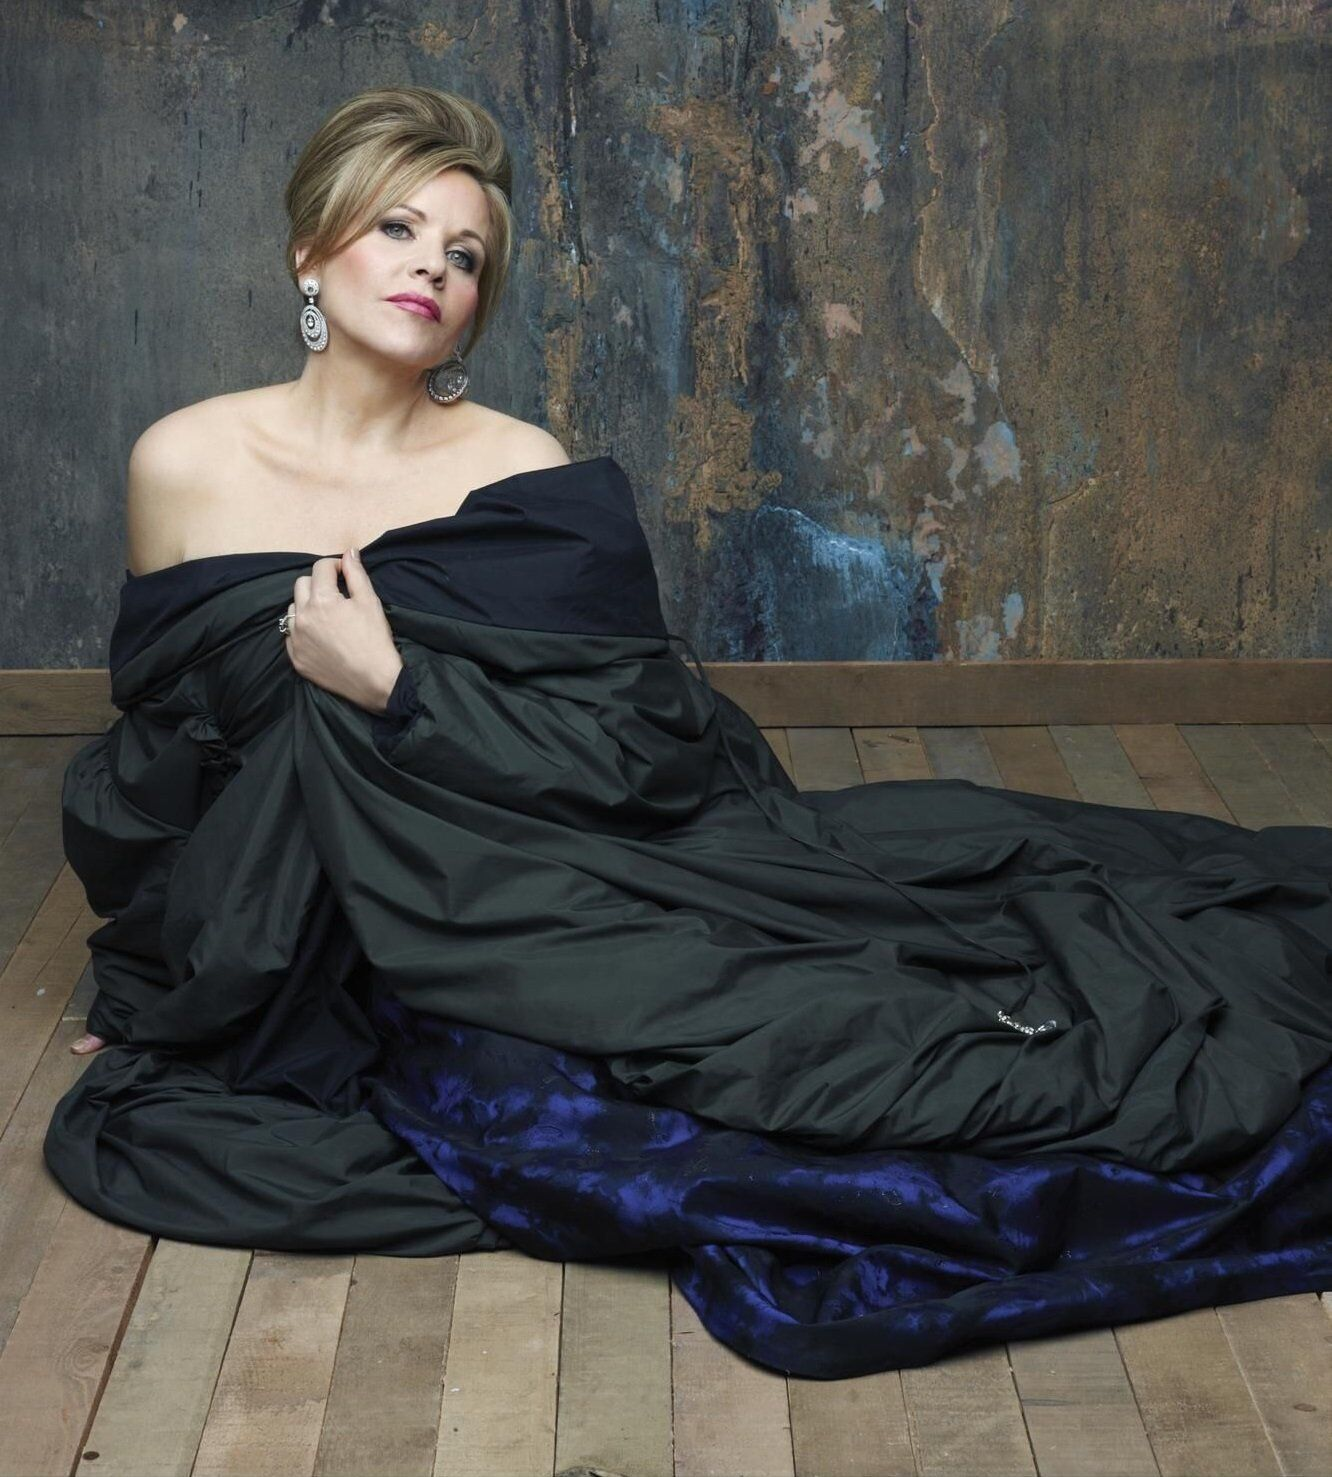 'Penelope': A world-premiere at Tanglewood